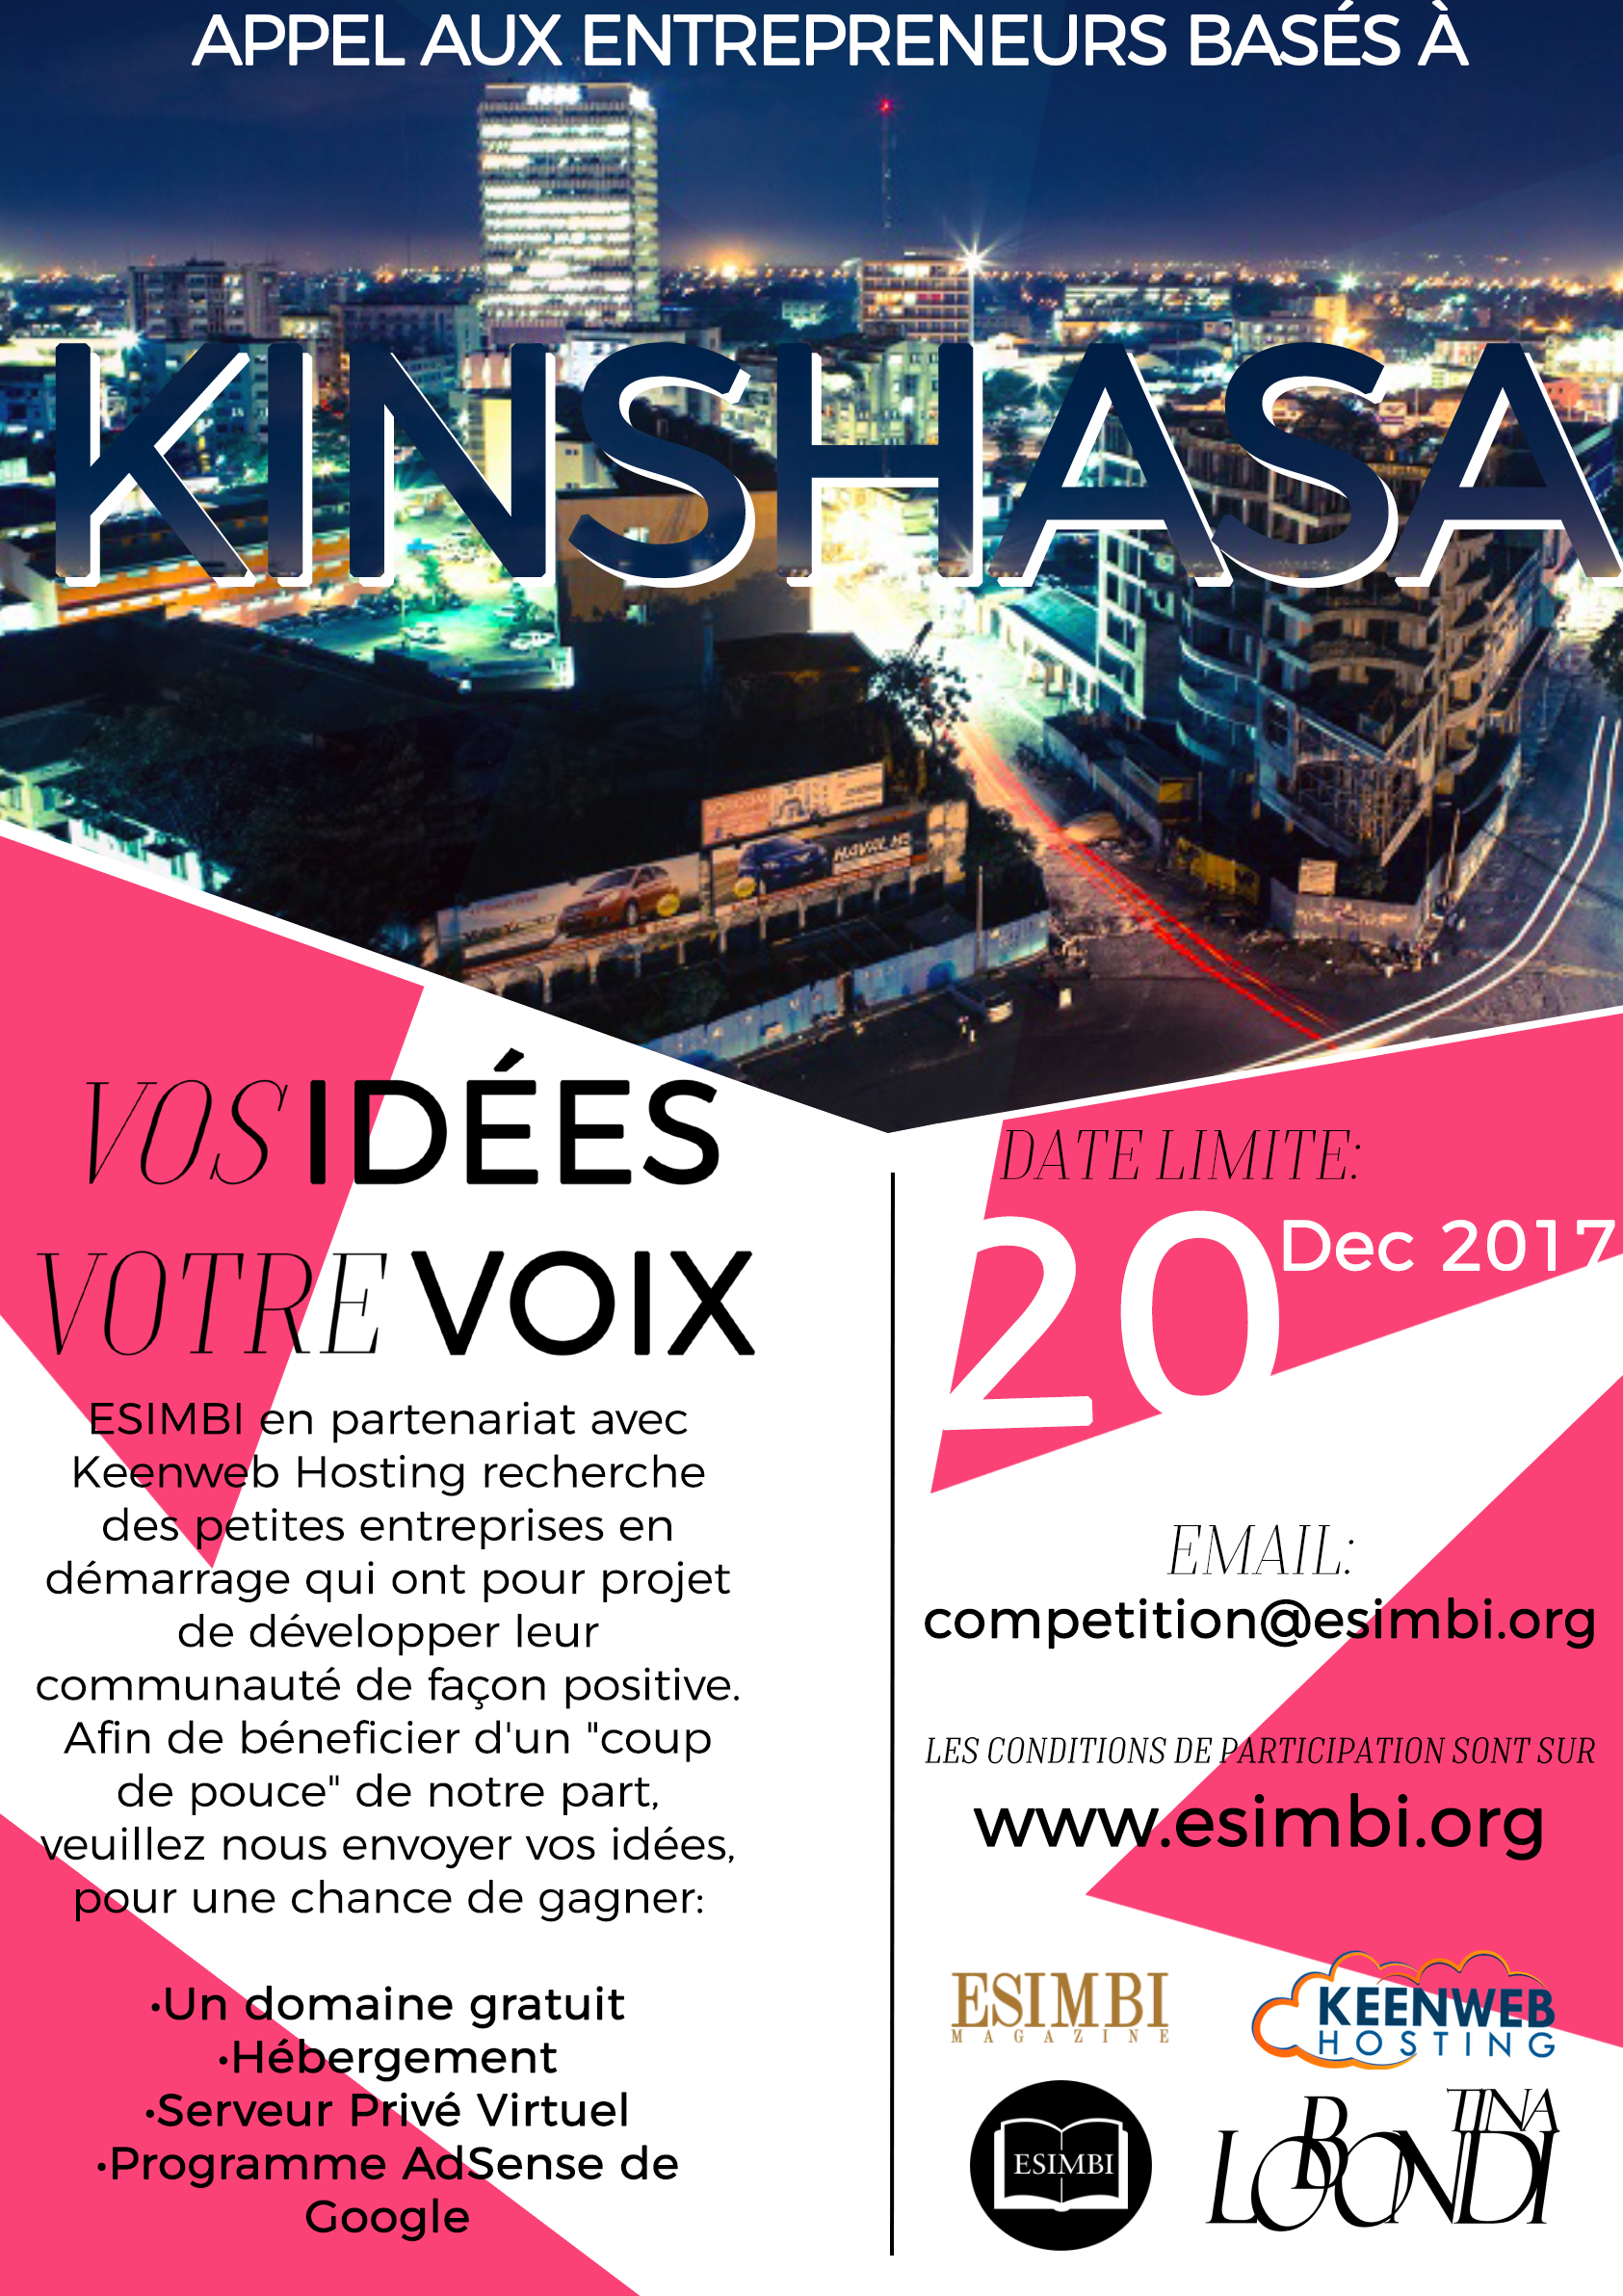 ESIMBI RDC competition